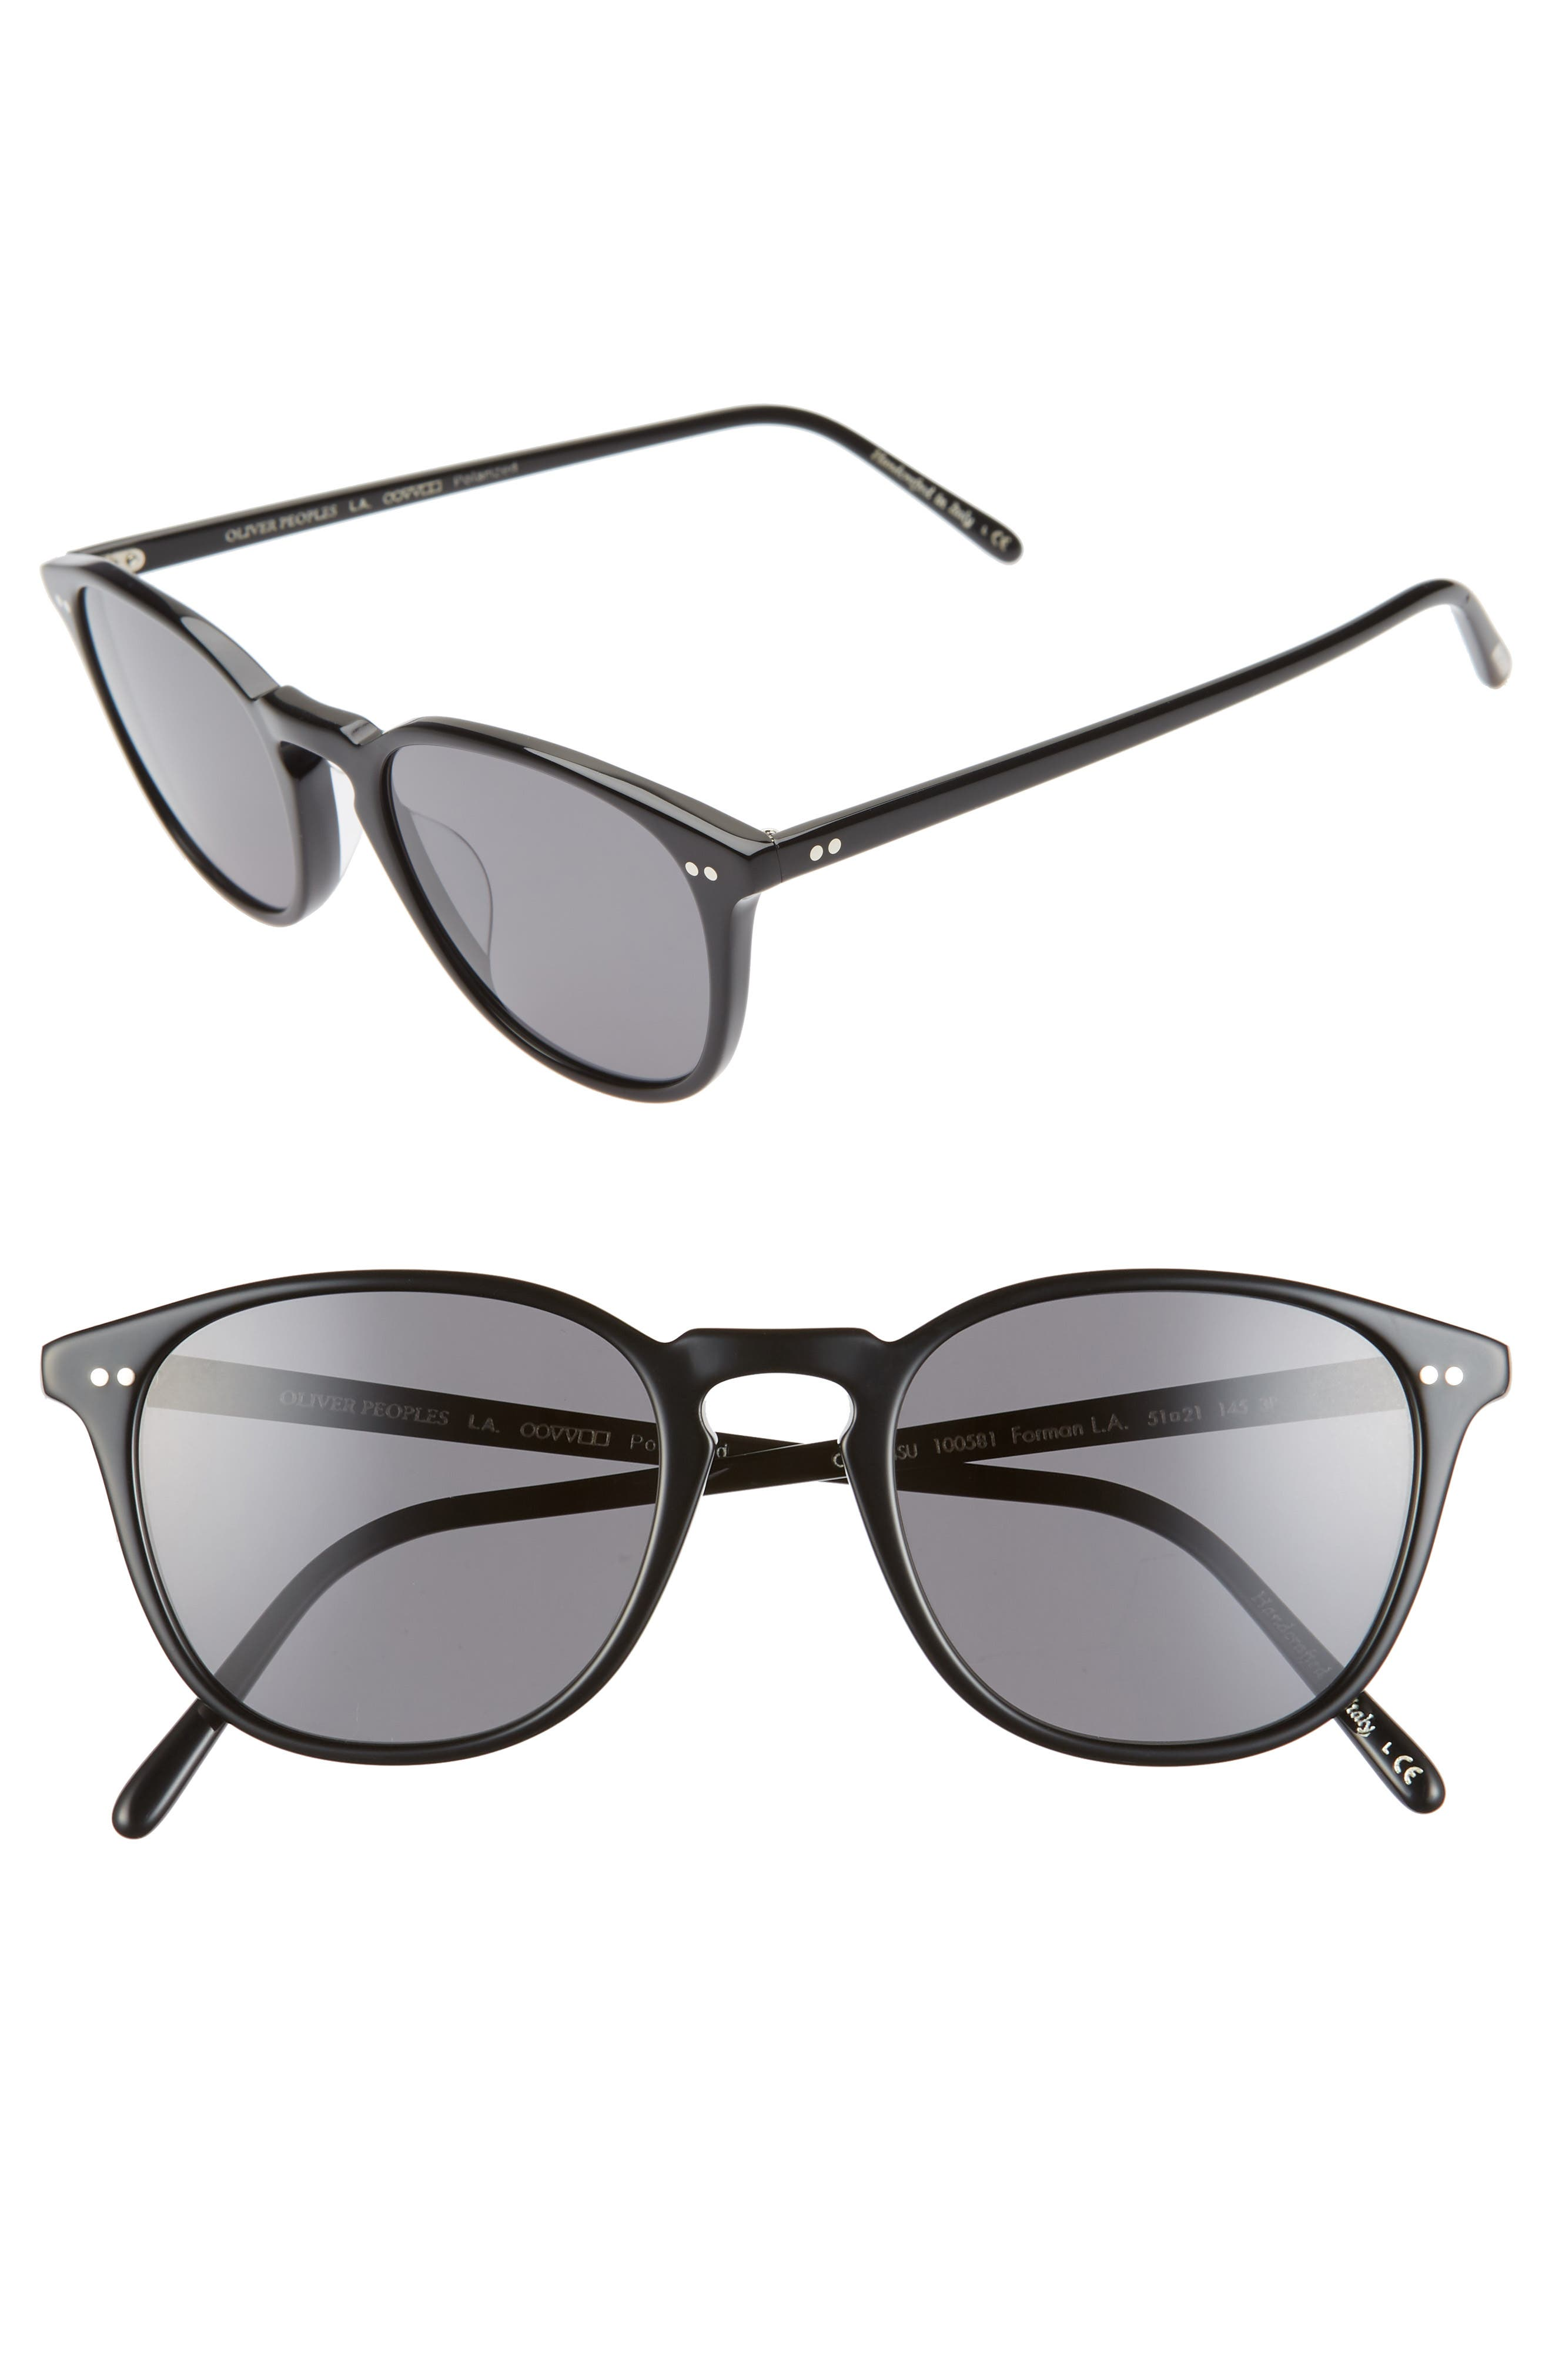 Oliver Peoples Forman L.a. 51Mm Polarized Round Sunglasses - Black/ Grey